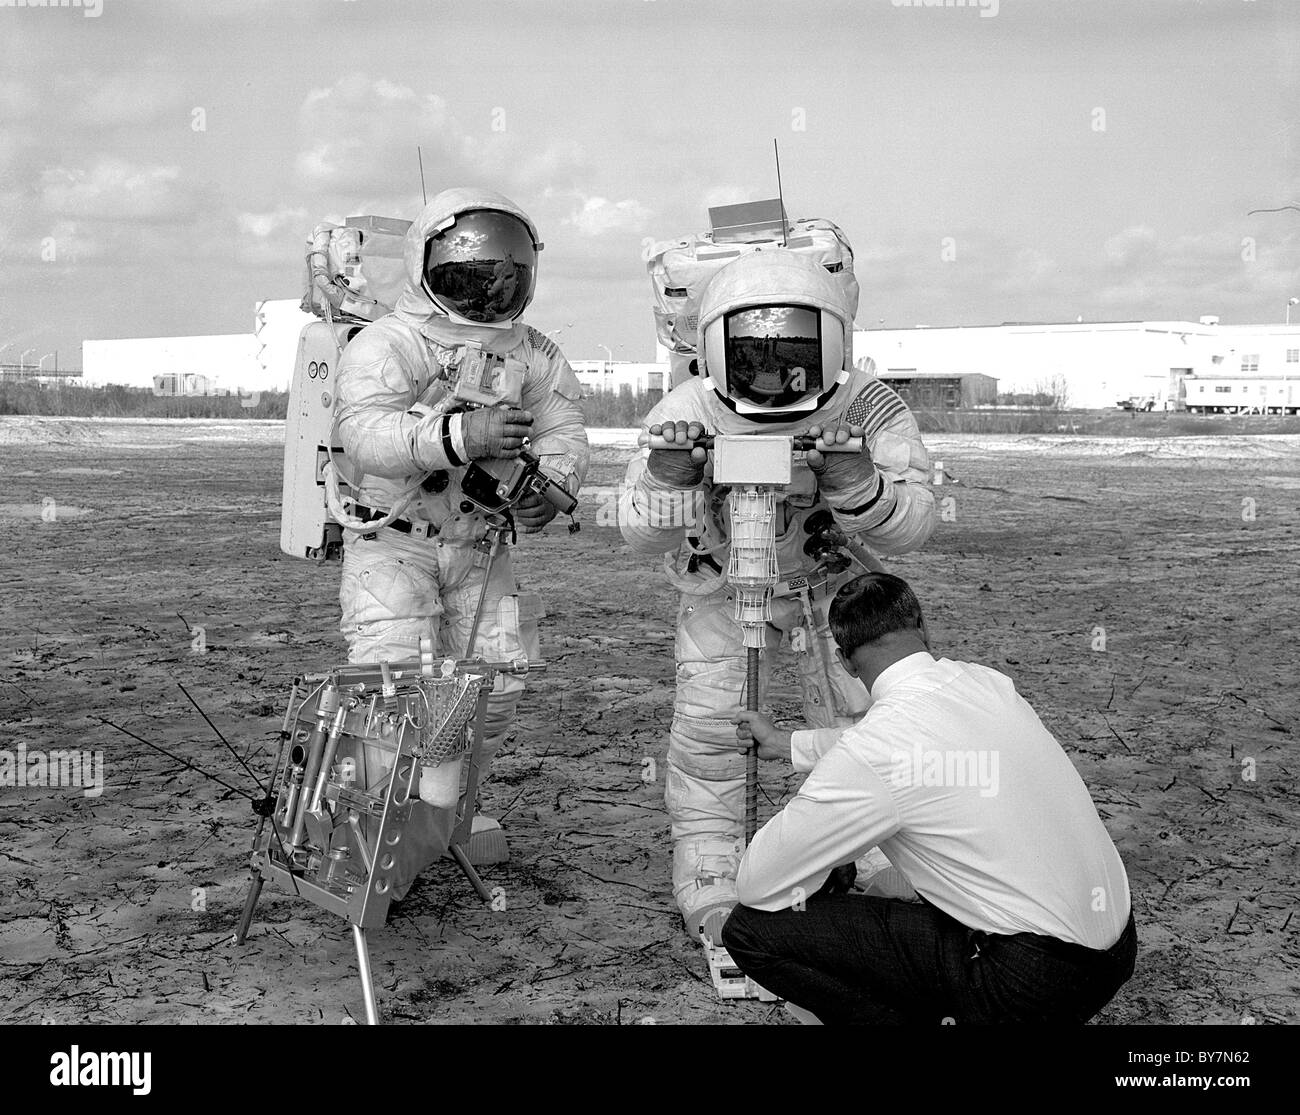 Apollo 13 EVA Walk-Through, training for extravehicular activity when on the moon - Stock Image